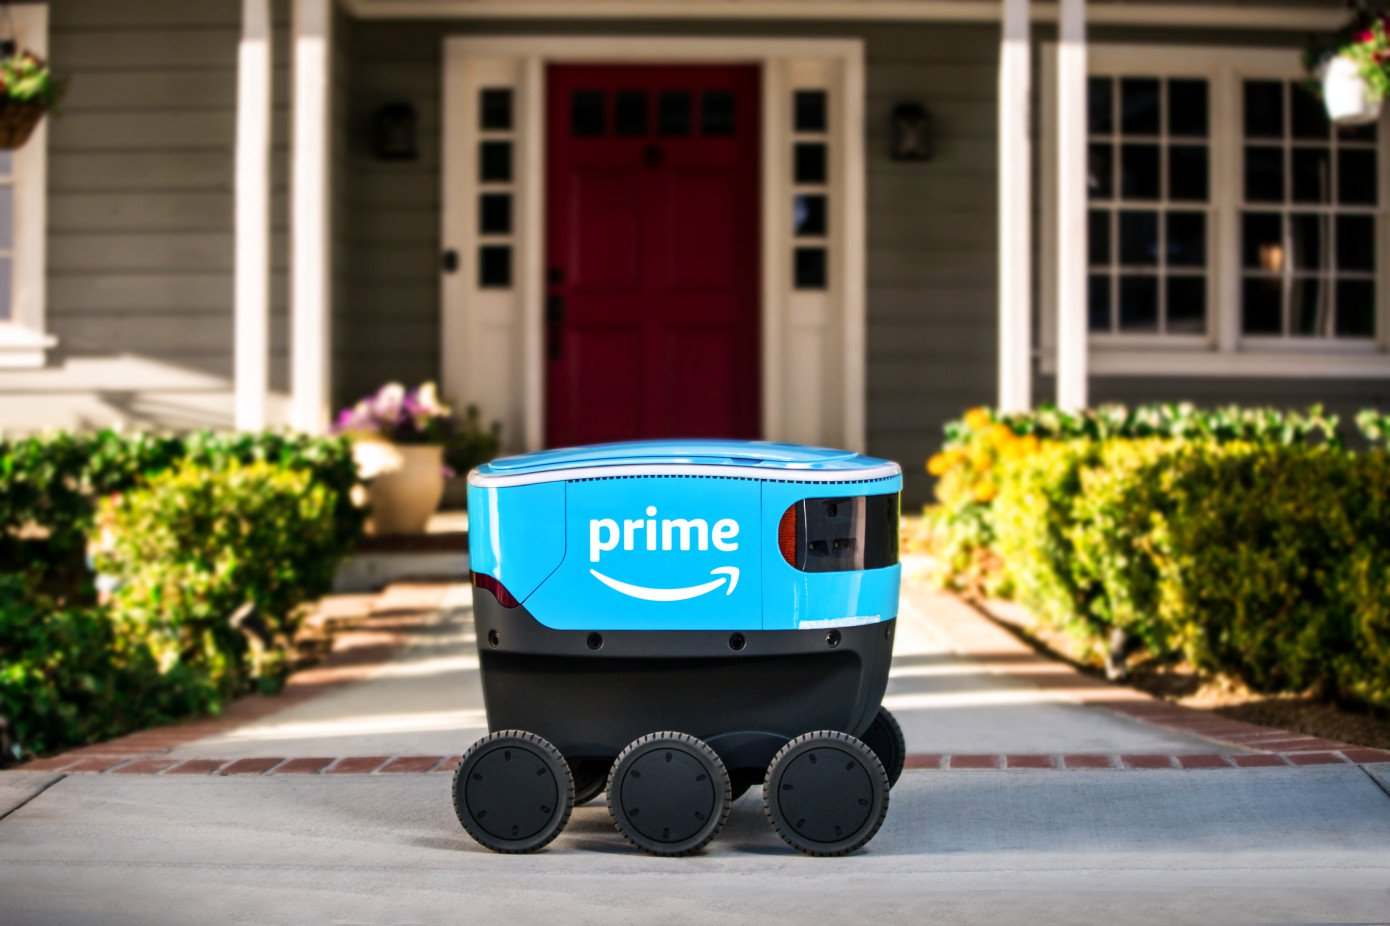 Amazon began field-testing their robots-the delivery guy, Scout